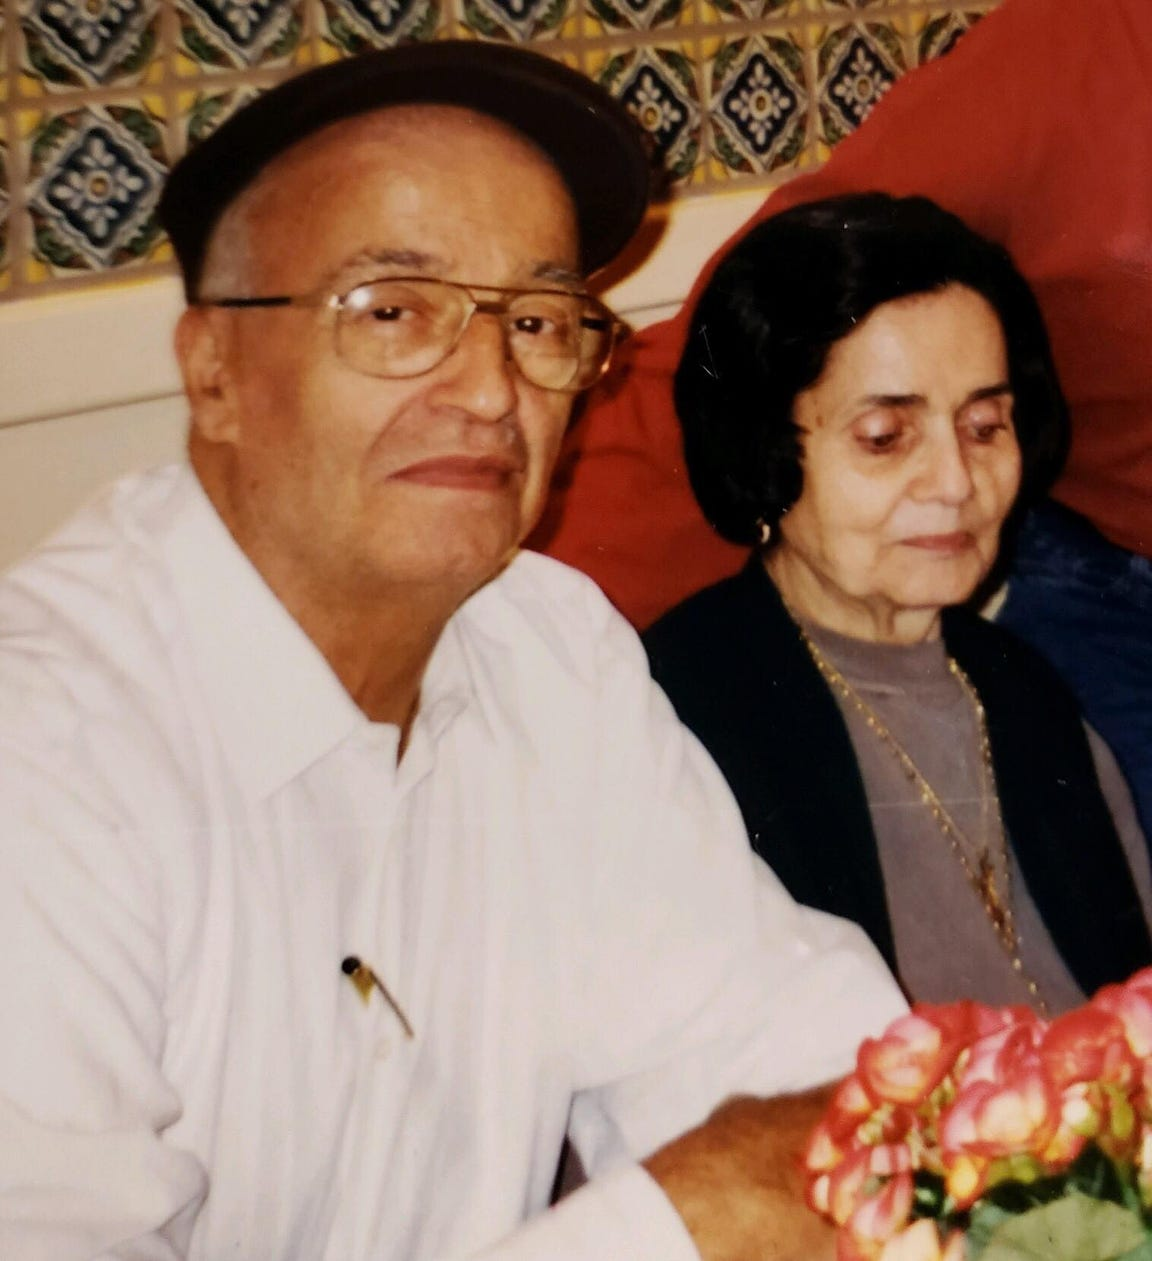 Elias and Mariette Bitar